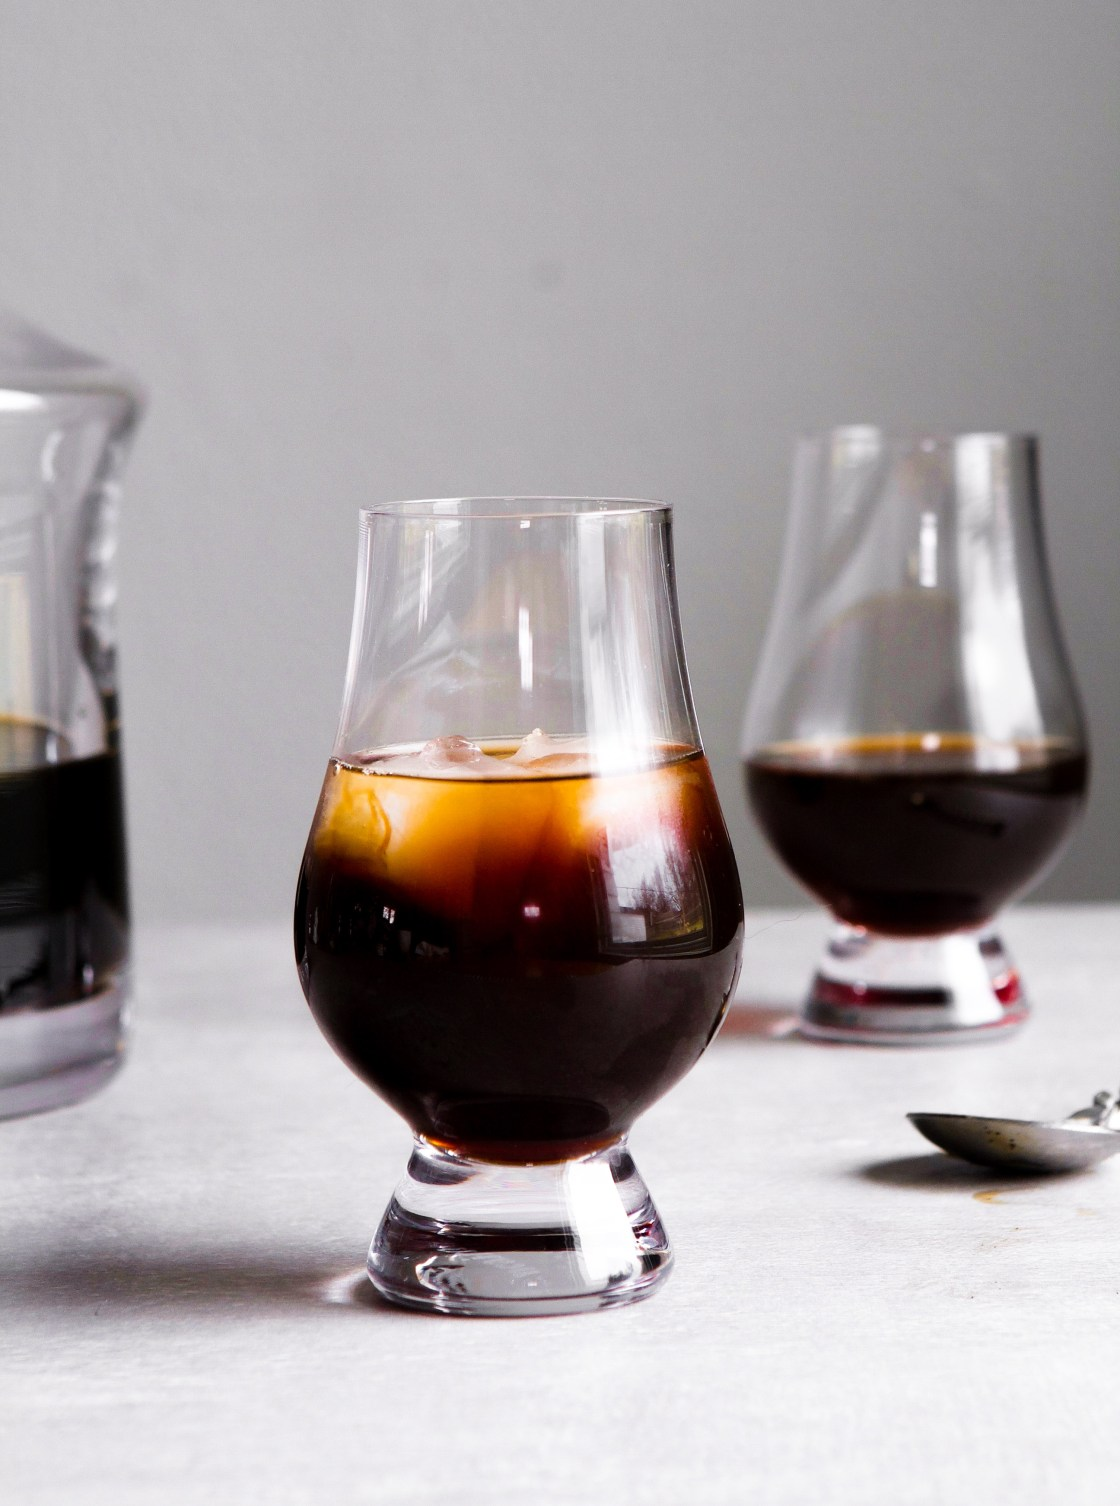 Incredibly simple to make, this Fig Infused Bourbon packs some major flavor. Delicious as is, this bourbon also makes a great addition to many winter drinks and pairs well with anything vanilla.   Zestful Kitchen